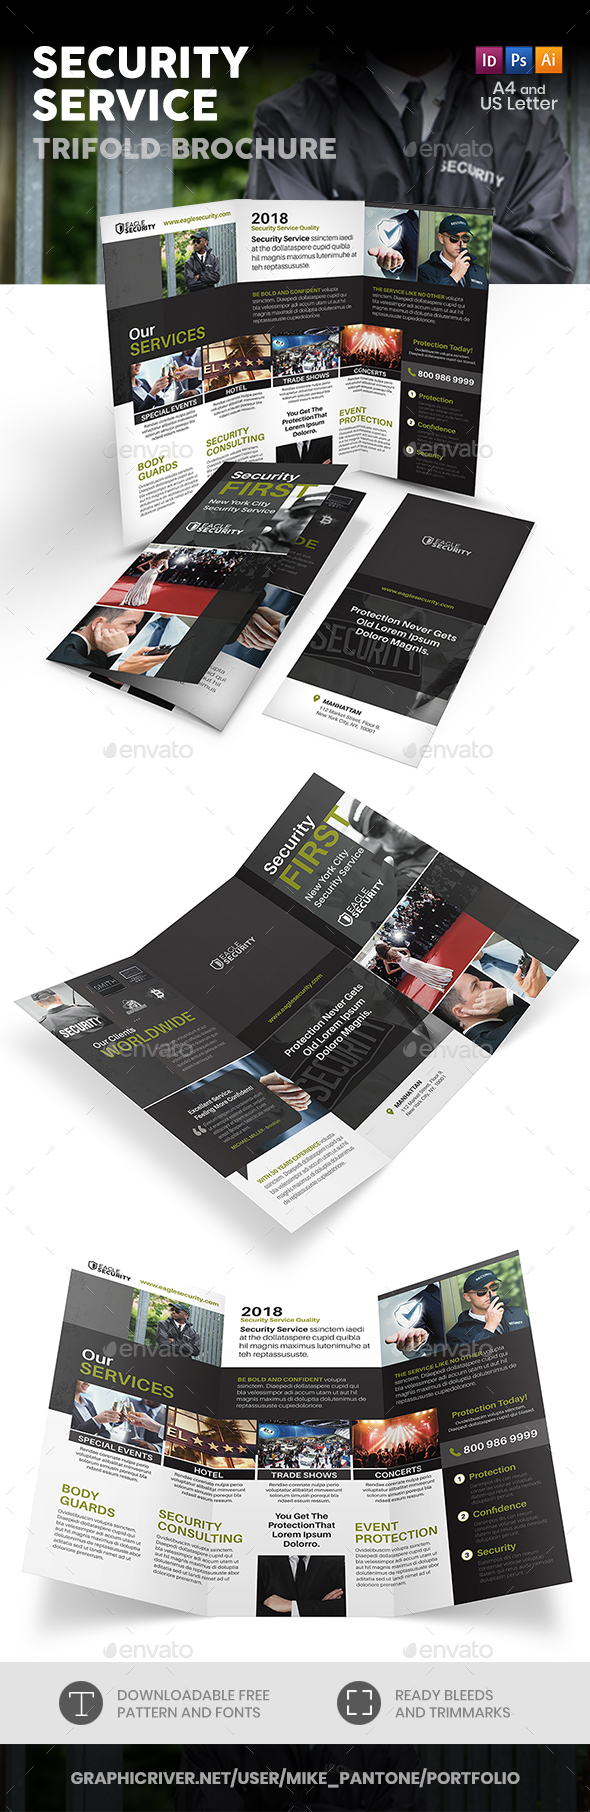 Security Guard Service Trifold Brochure - Informational Brochures